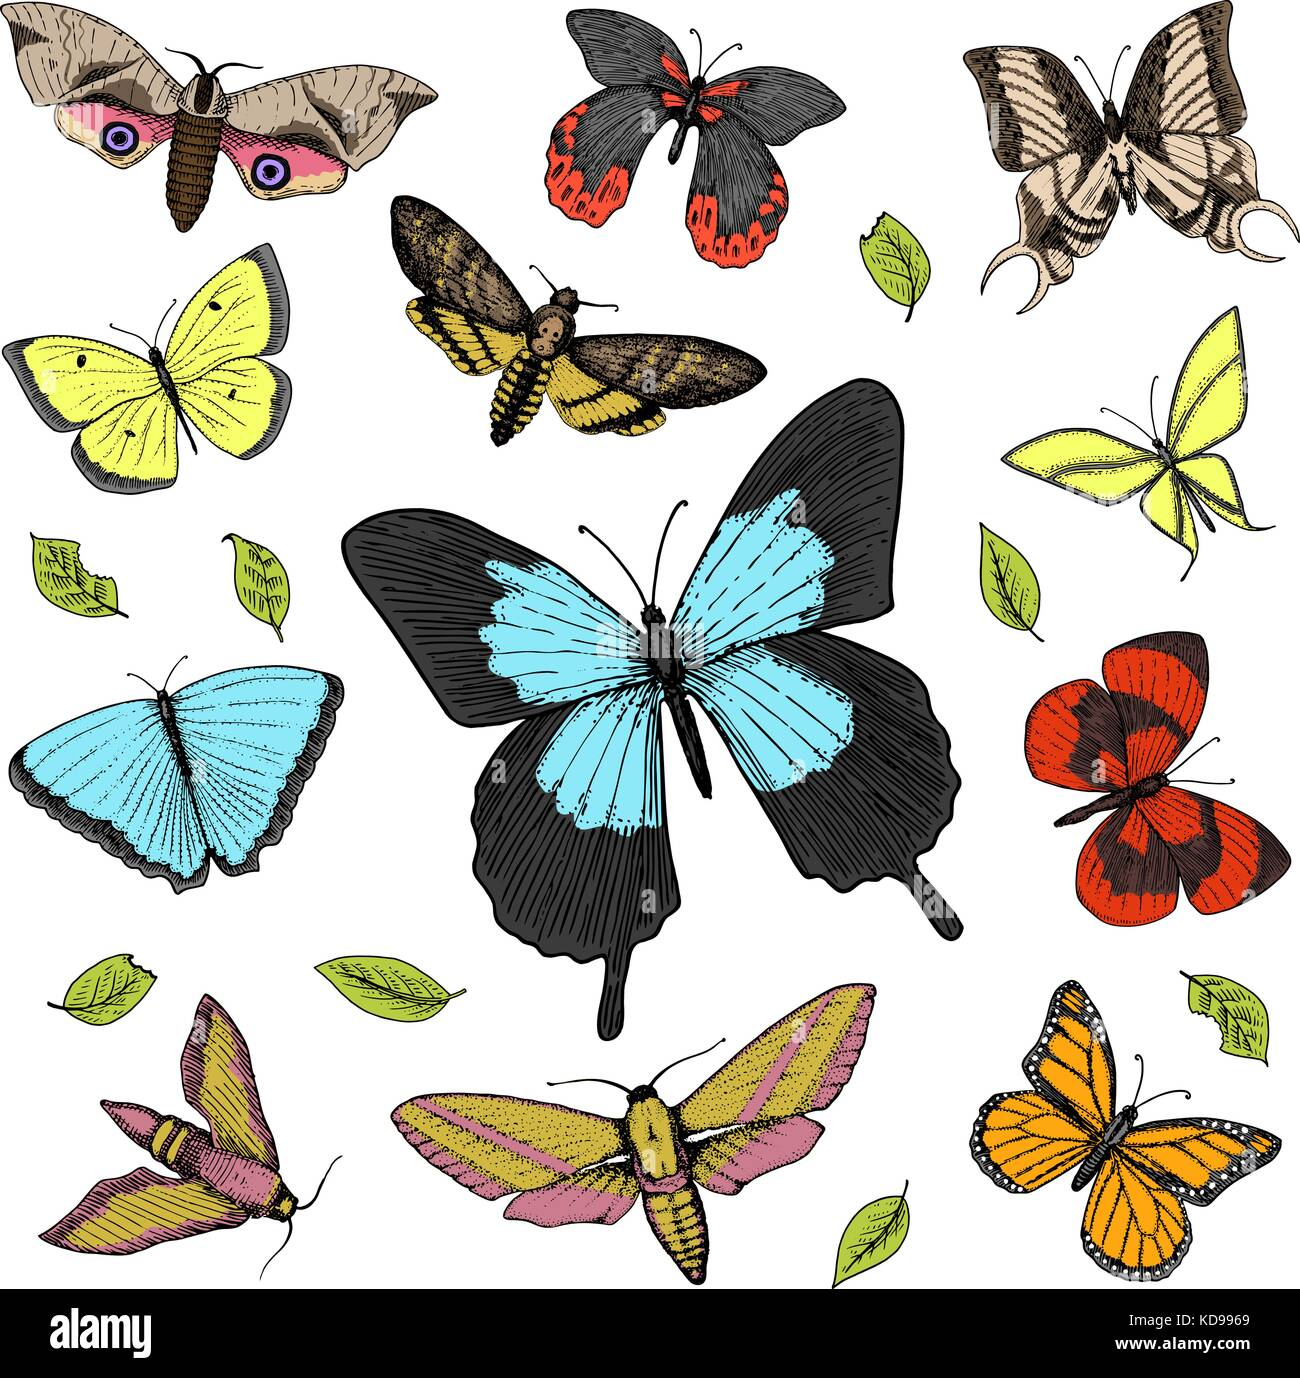 Tattoo or boho t shirt or scrapbooking design mystical esoteric tattoo or boho t shirt or scrapbooking design mystical esoteric symbol of freedom and travel butterfly or insect sketch entomological collection biocorpaavc Images